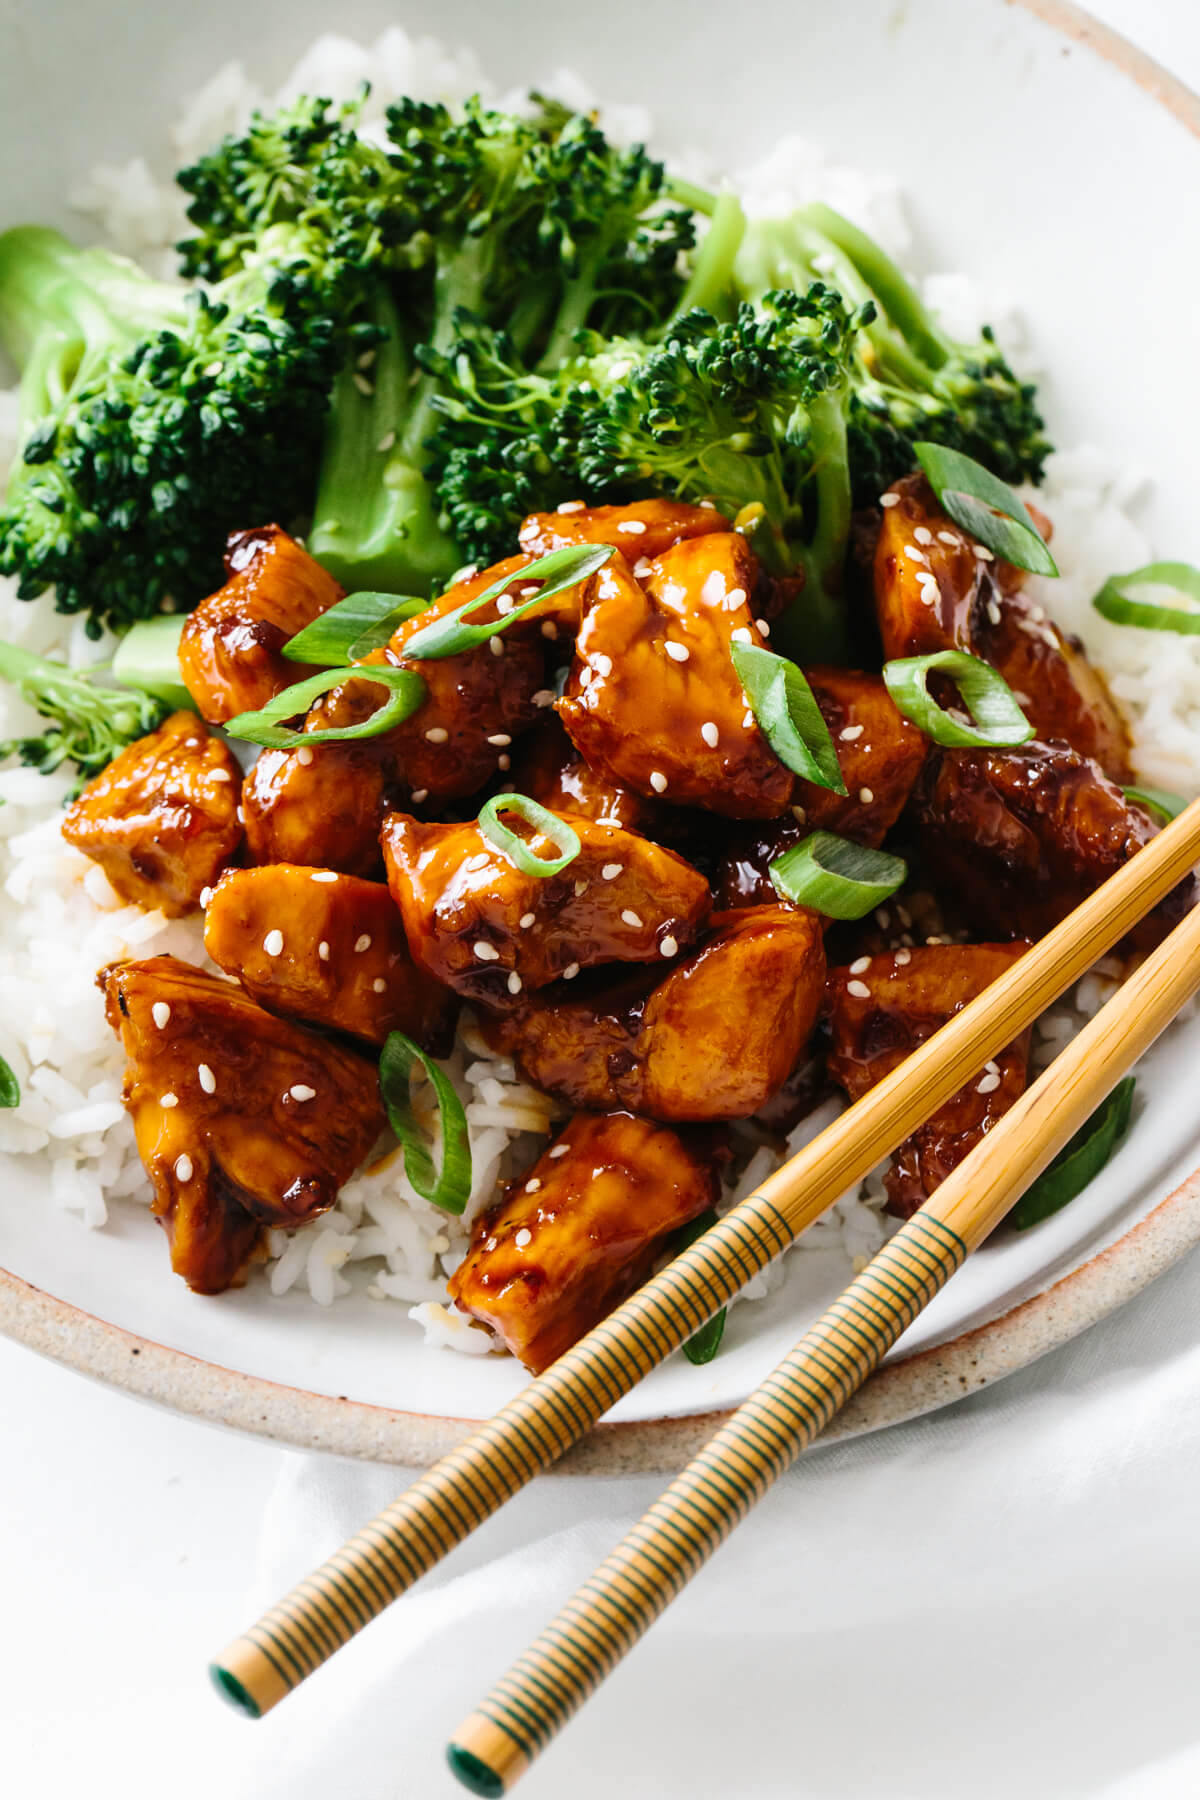 Teriyaki chicken recipe served with rice and broccoli.